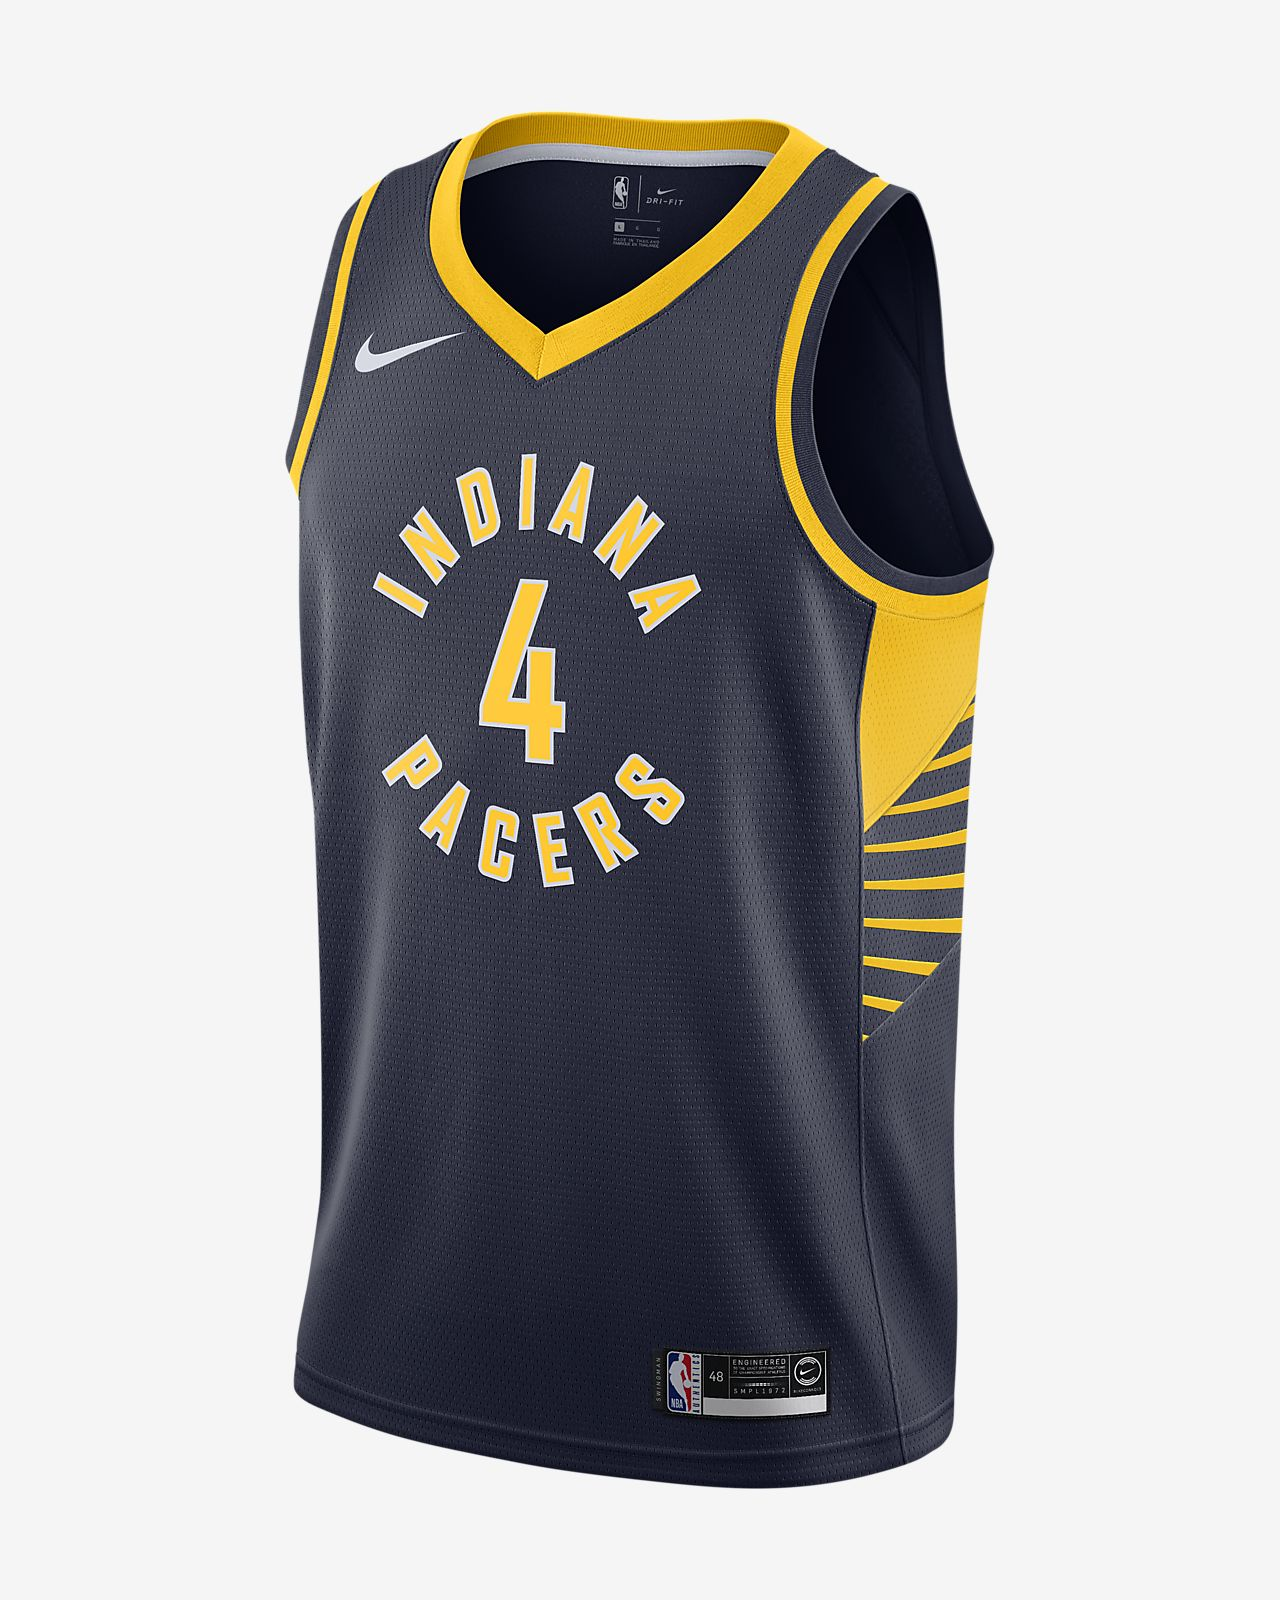 Maillot connecté Nike NBA Victor Oladipo Icon Edition Swingman (Indiana Pacers) pour Homme